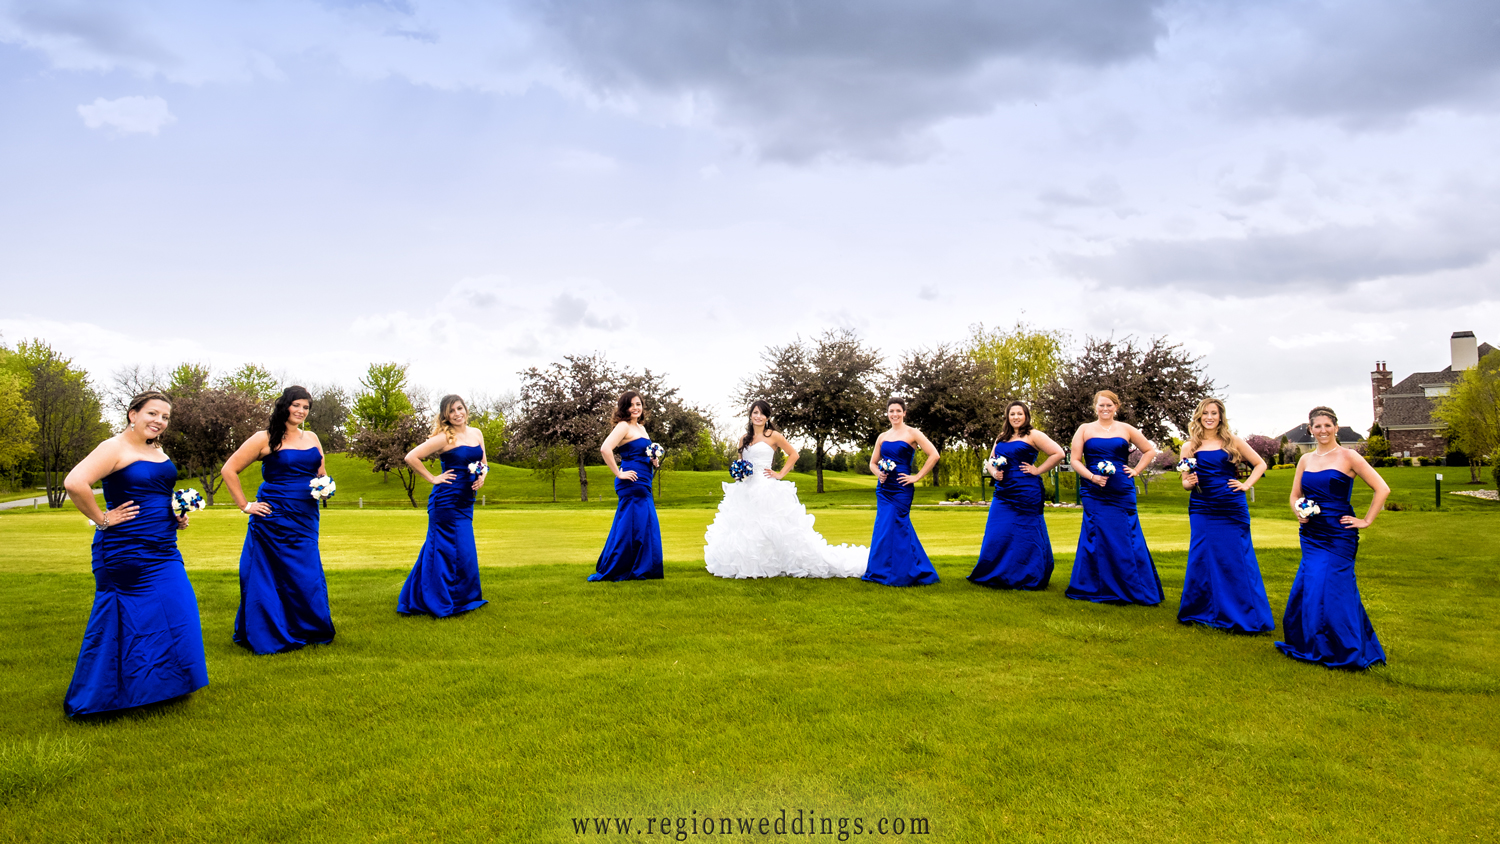 The bridesmaids in their royal blue dresses get sassy at White Hawk Country Club.